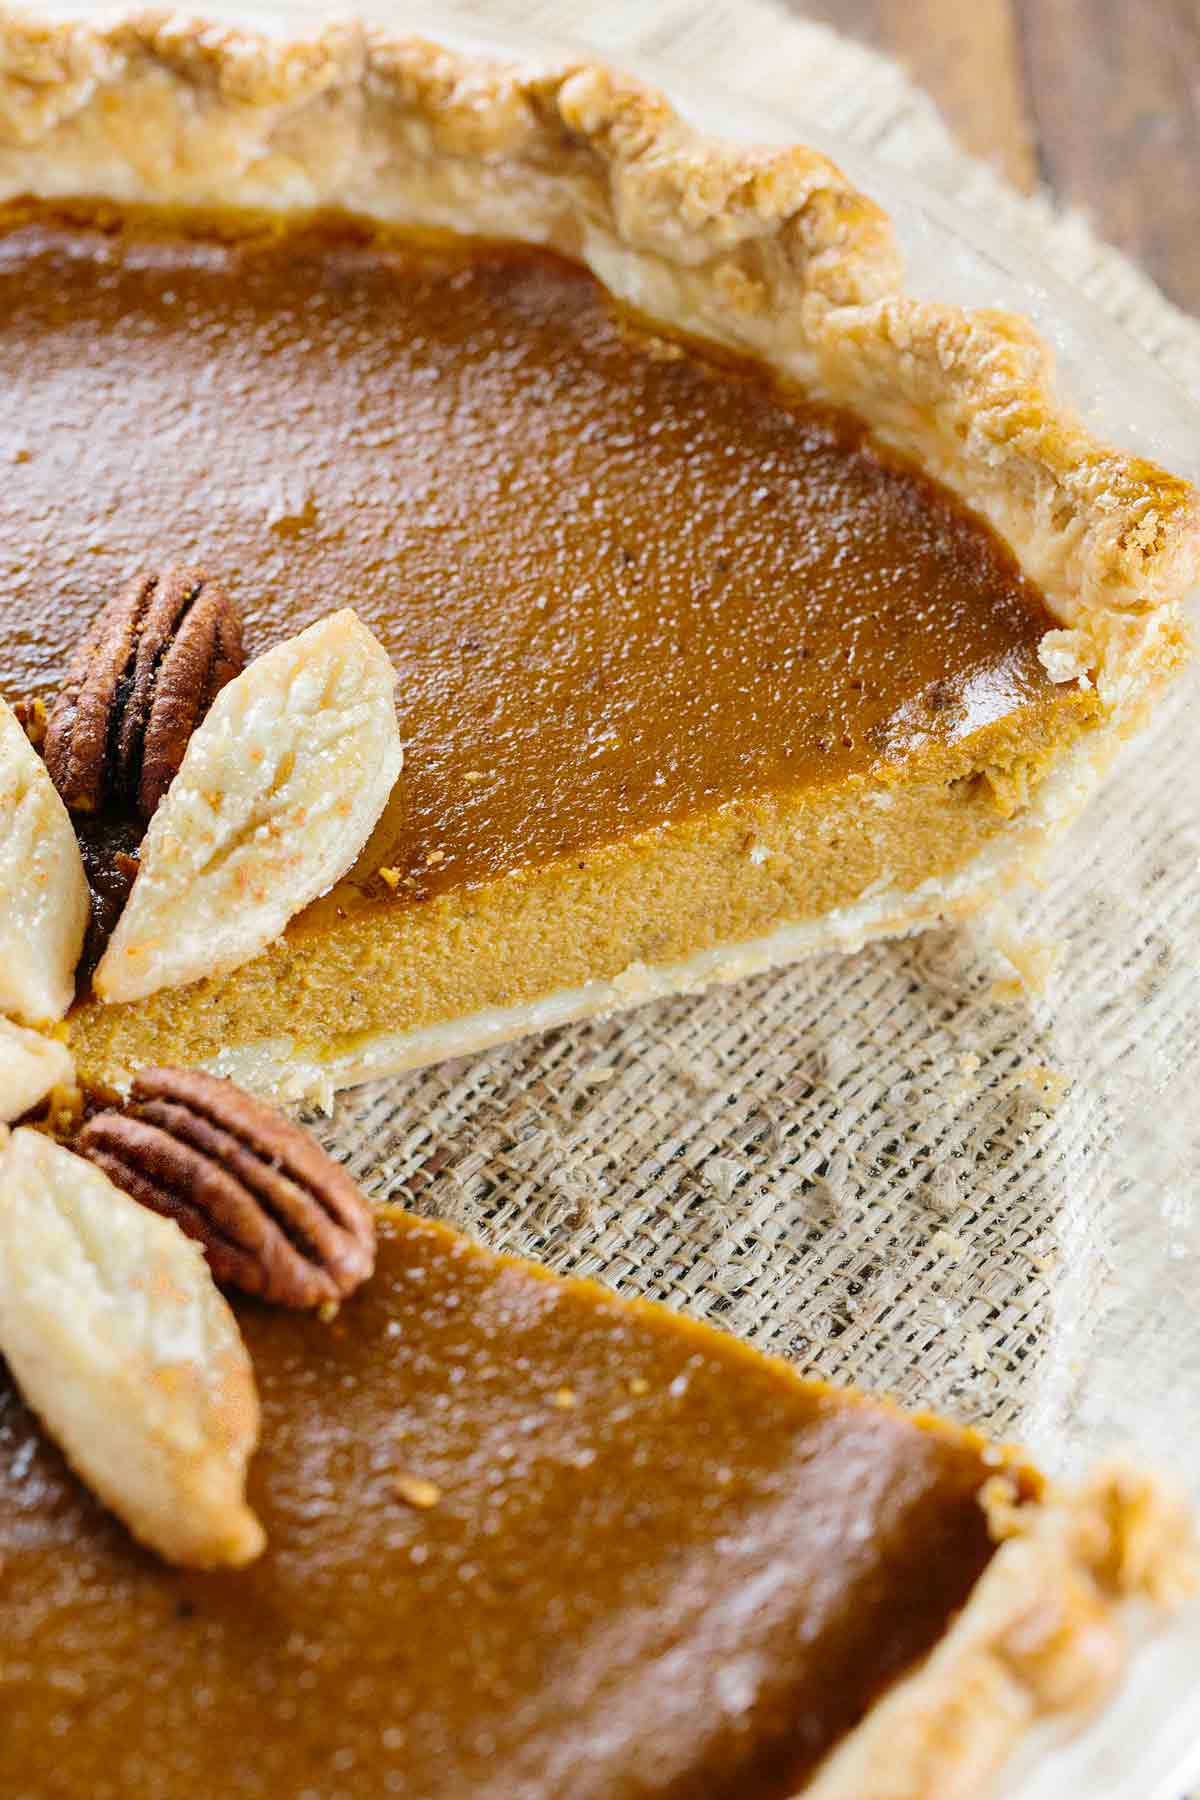 Pumpkin pie with a slice removed